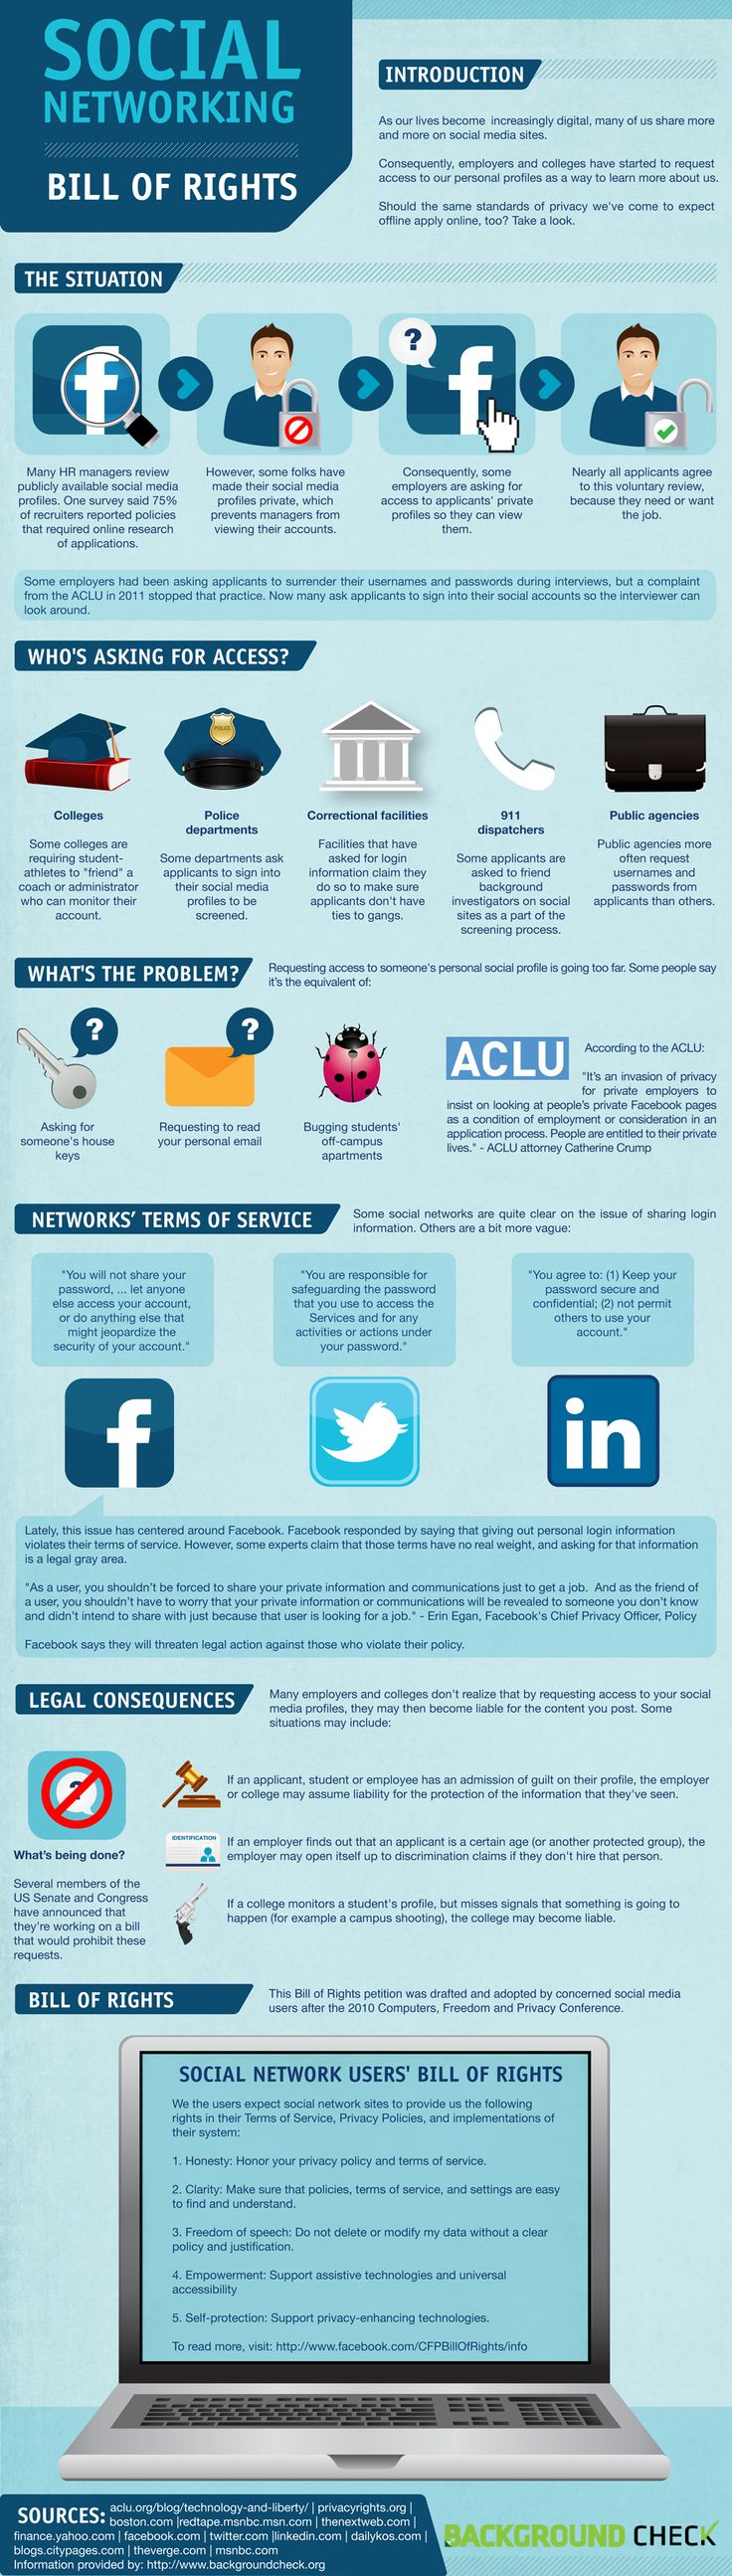 Where the USA goes...?  >What's at Stake When Employers Ask for Social Media Passwords? [INFOGRAPHIC]